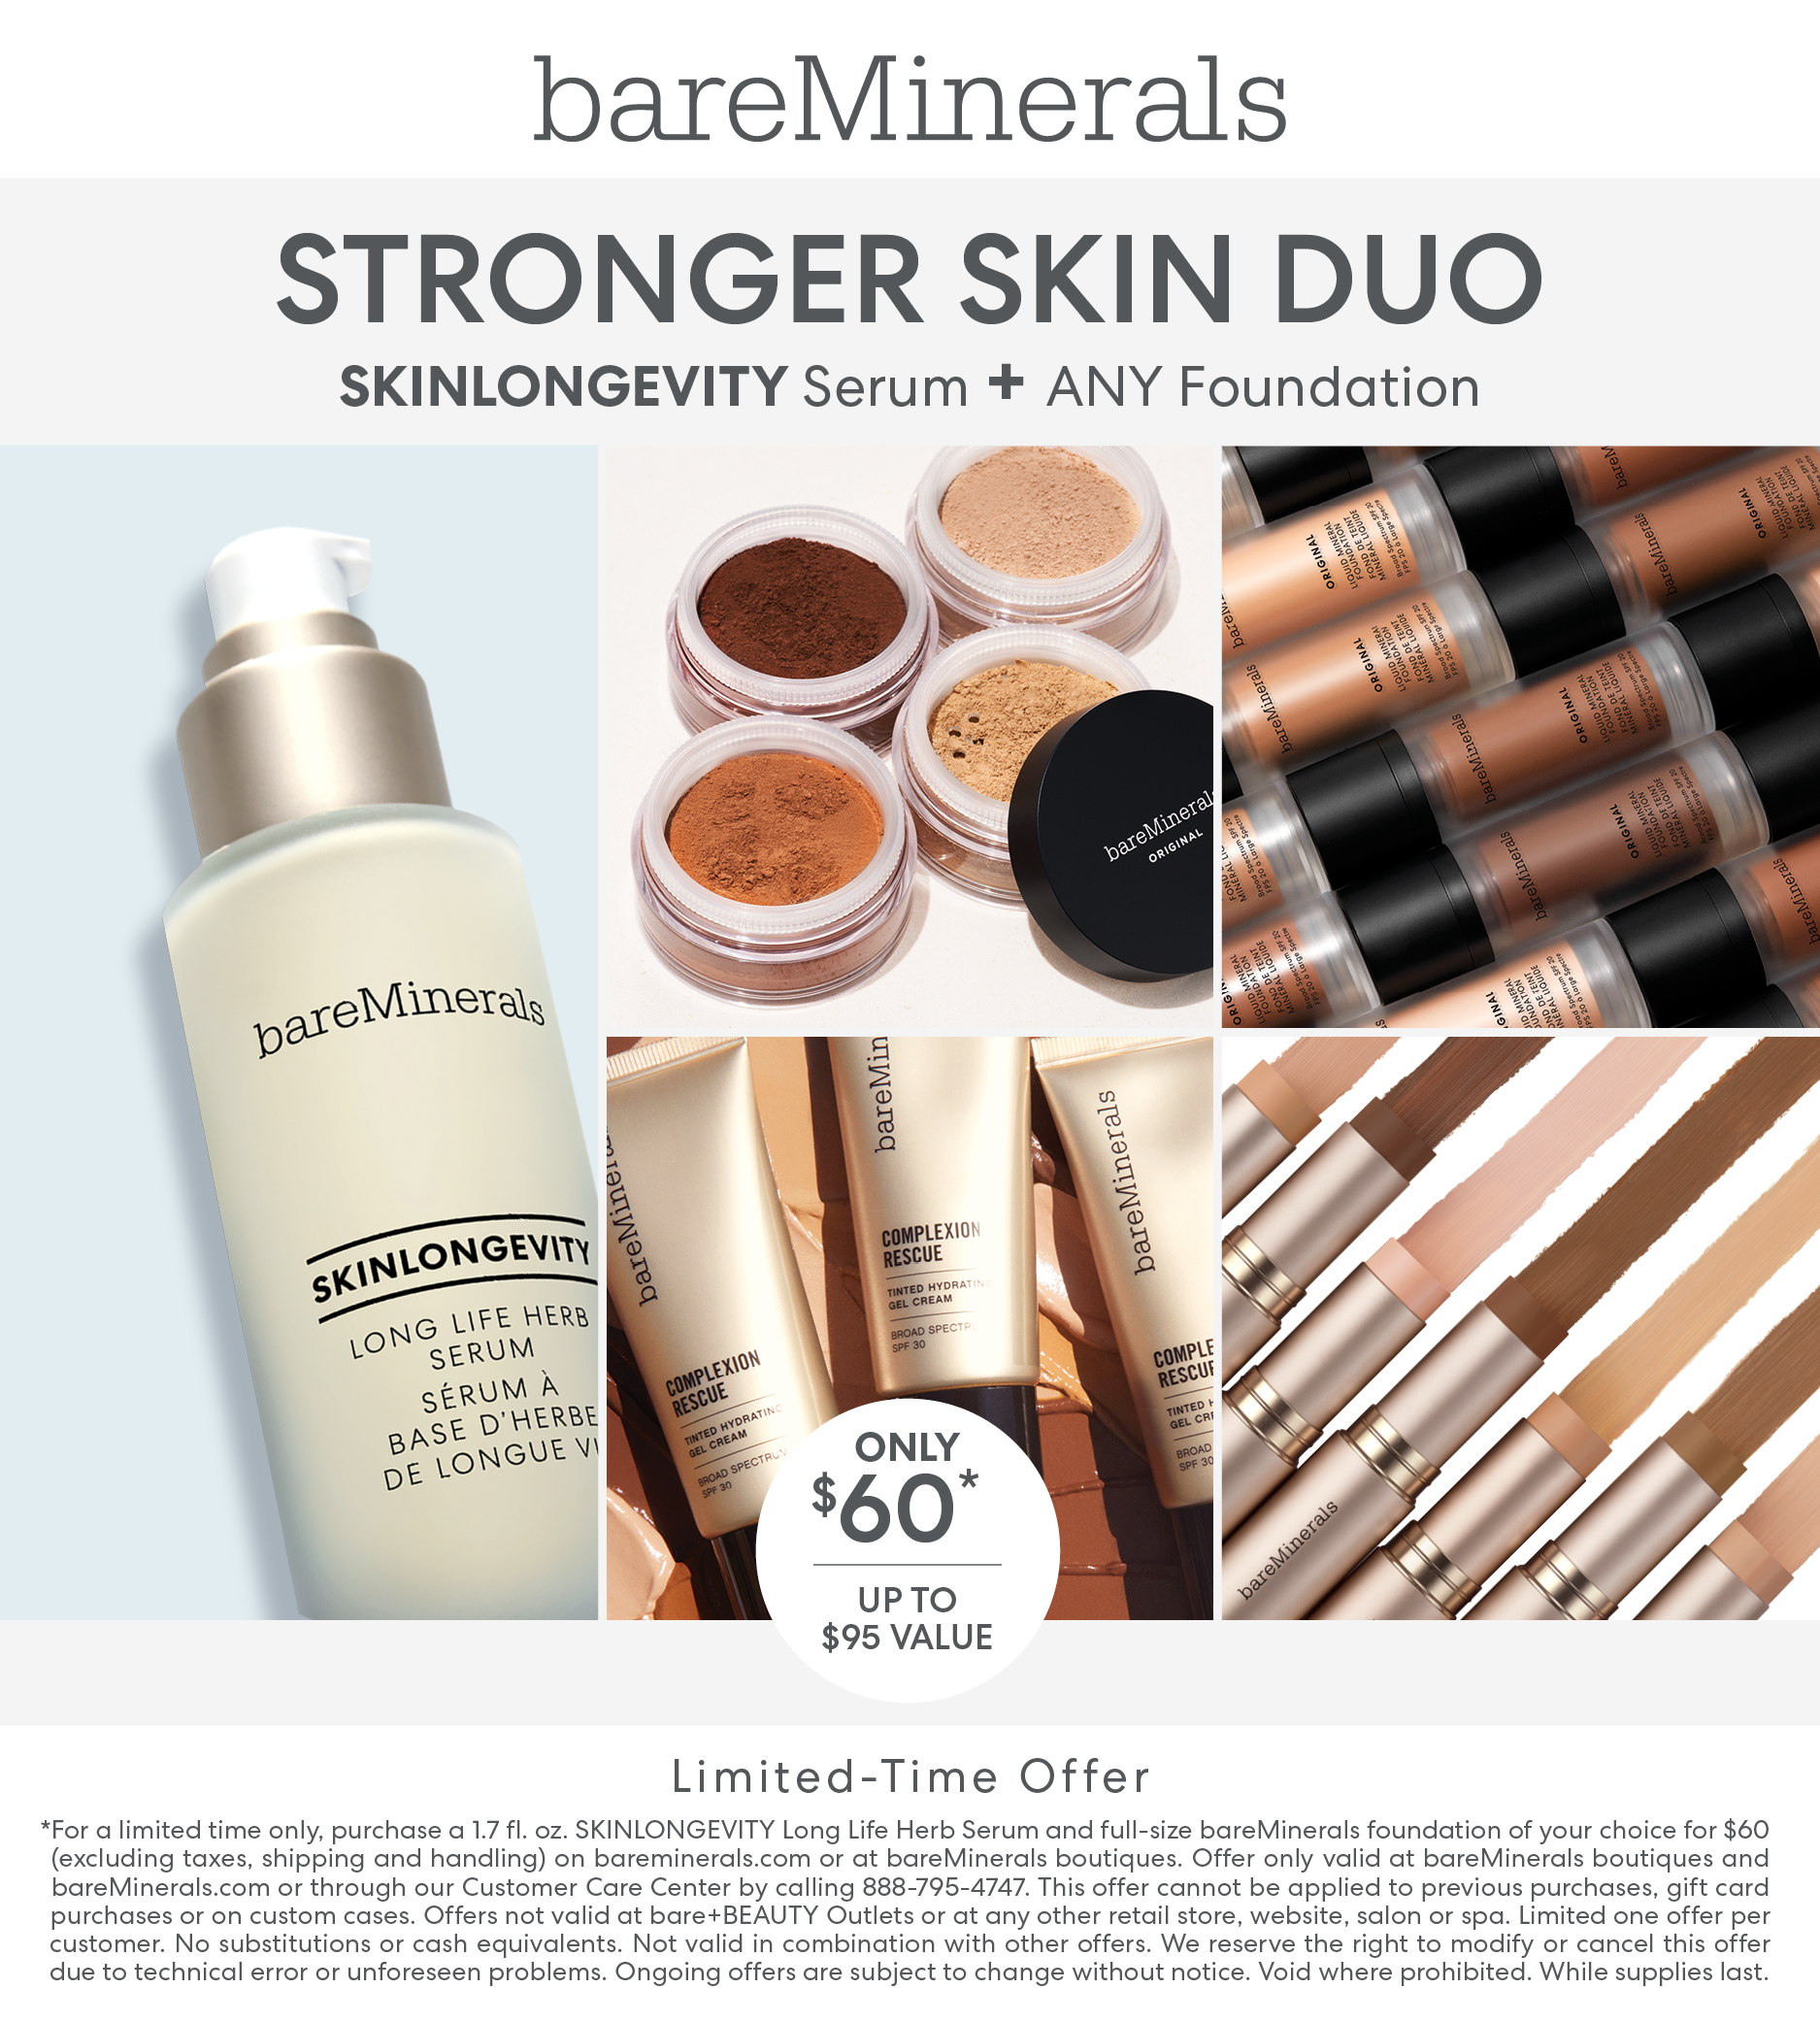 Skinlongevity Plus Choice of Foundation for $60 from bareMinerals